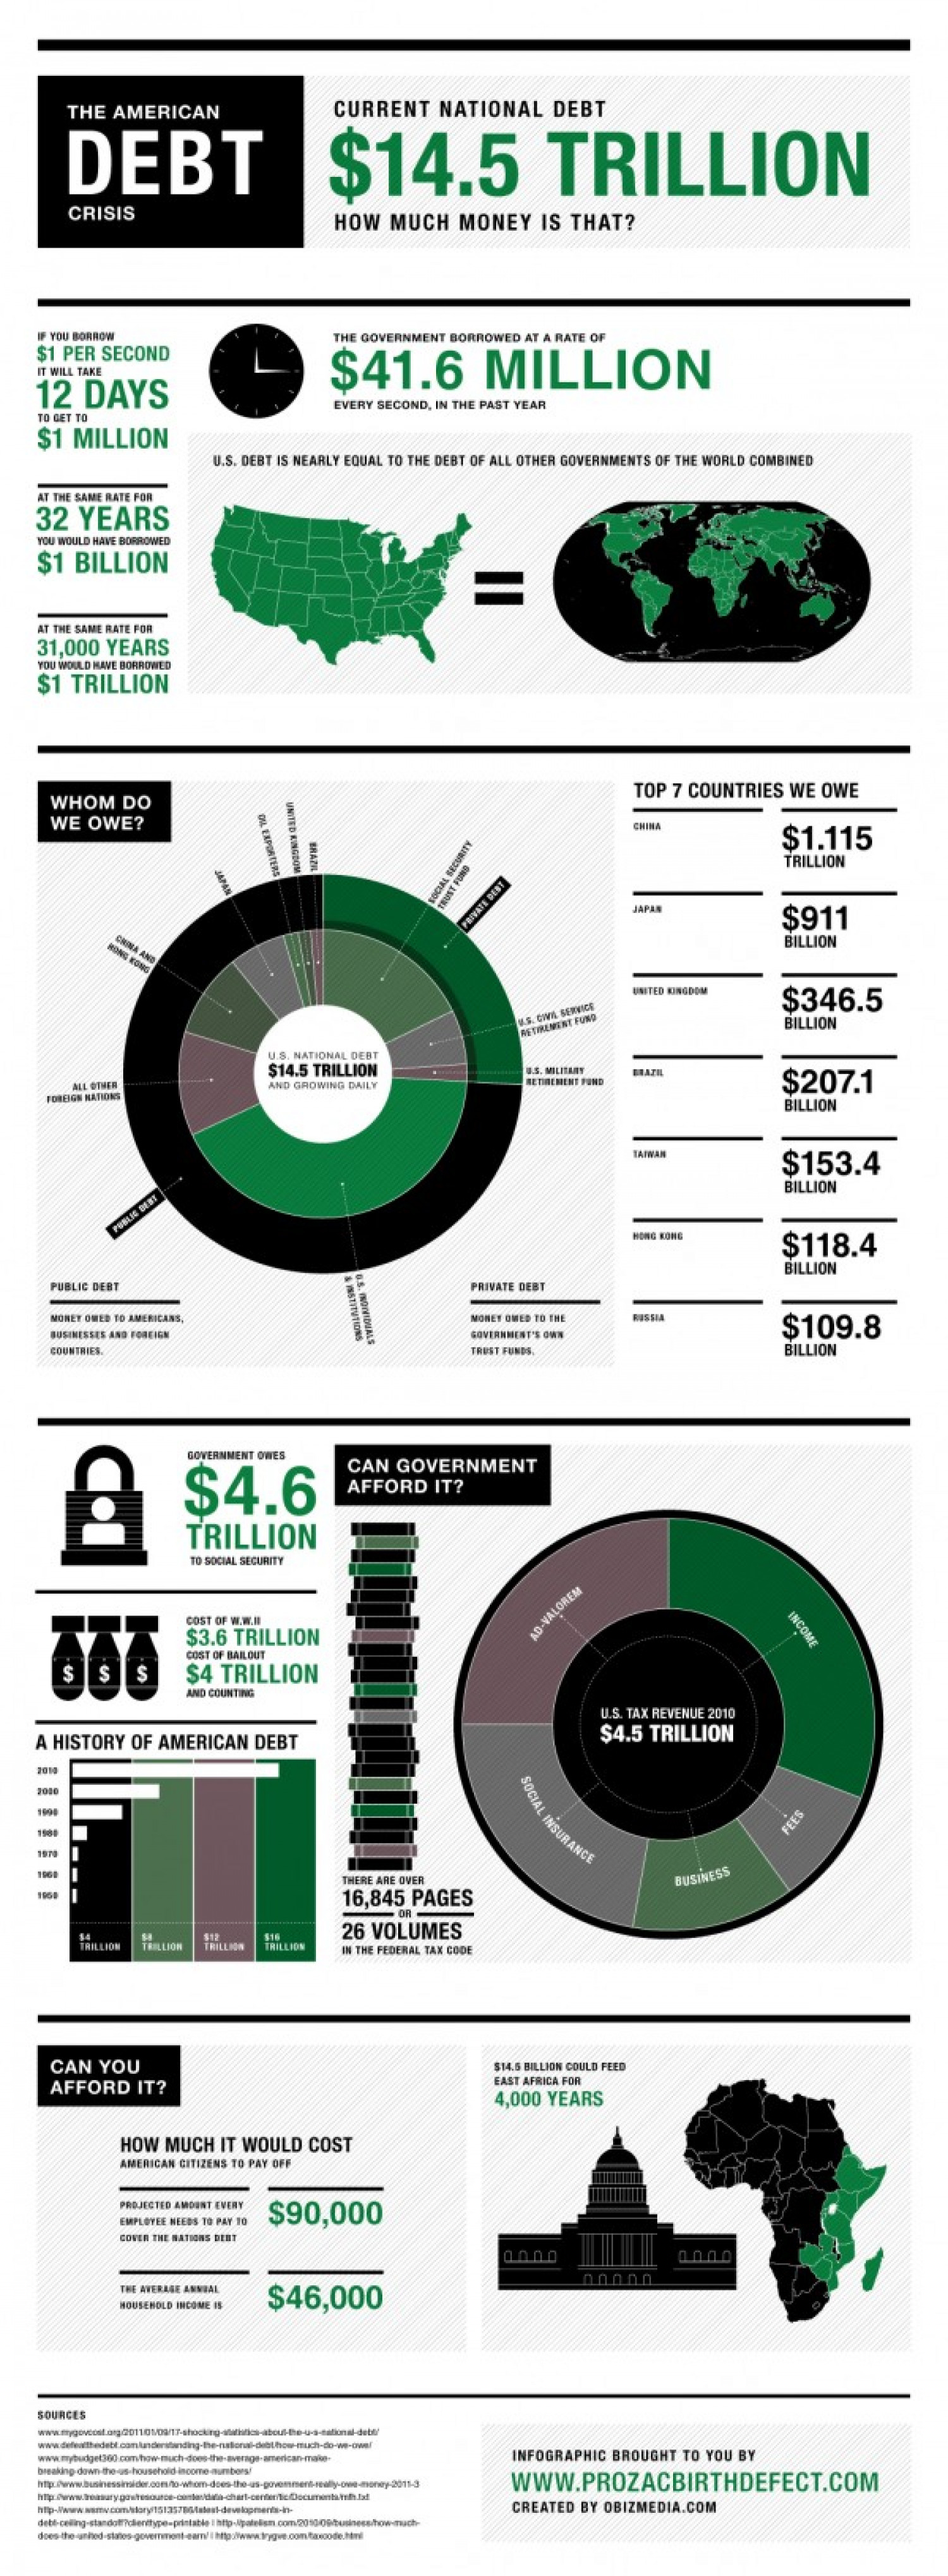 The American Debt Crisis Infographic